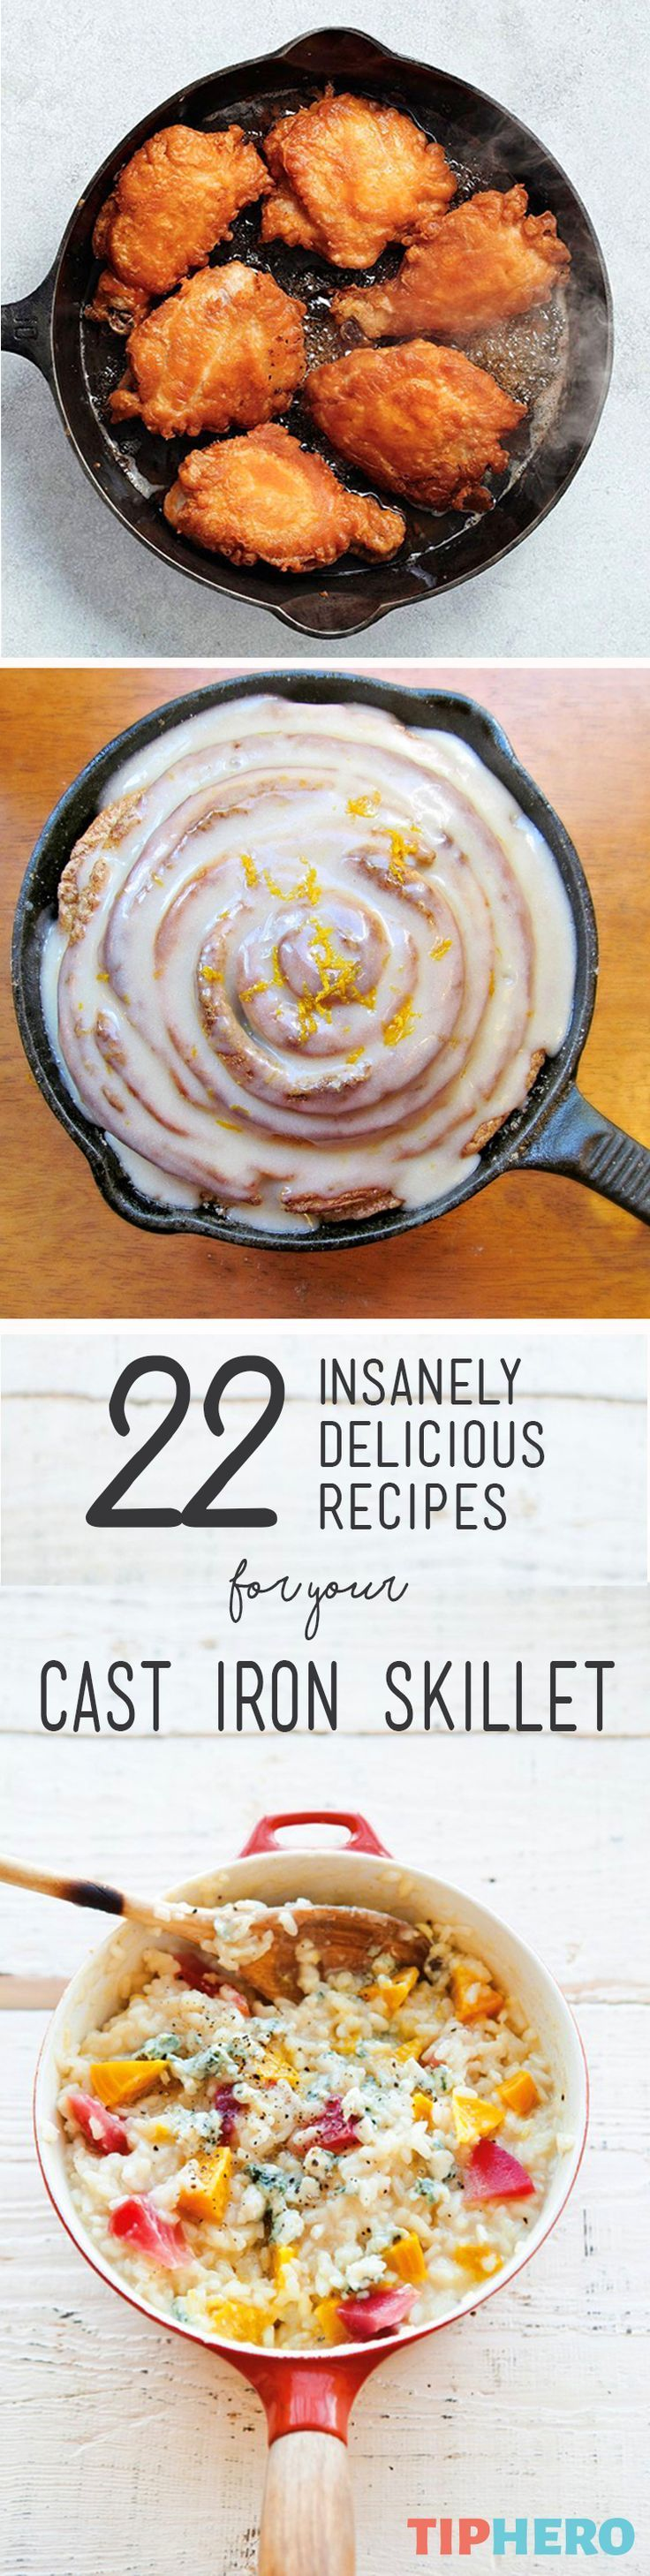 22 Insanely Scrumptious Recipes on your Forged Iron Skillet | By no means would we expect .... >> Look into more by clicking the photo